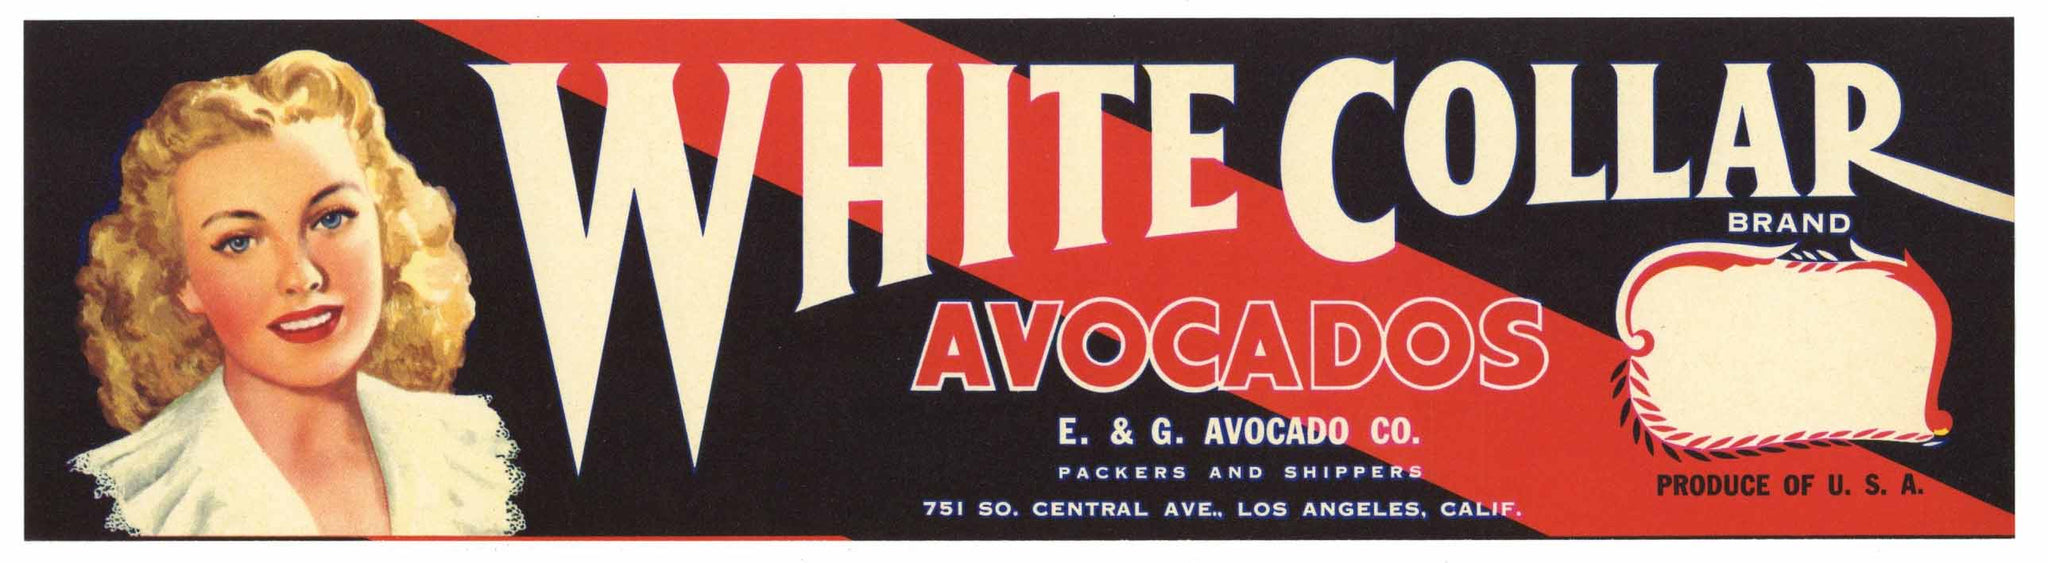 White Collar Brand Vintage Avocado Crate Label